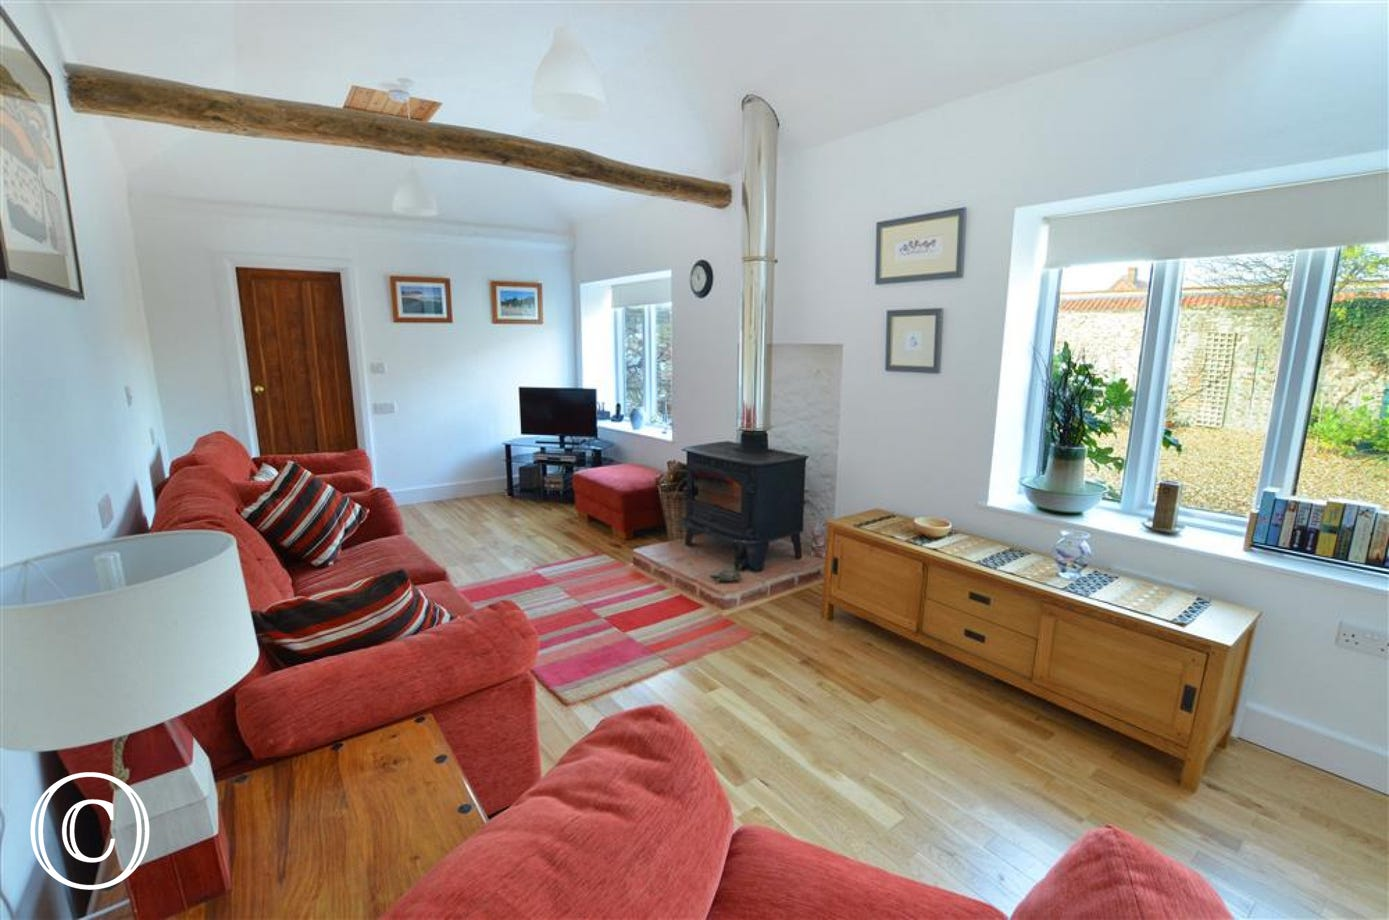 View of family sized sitting room with TV, woodburner and low storage unit.